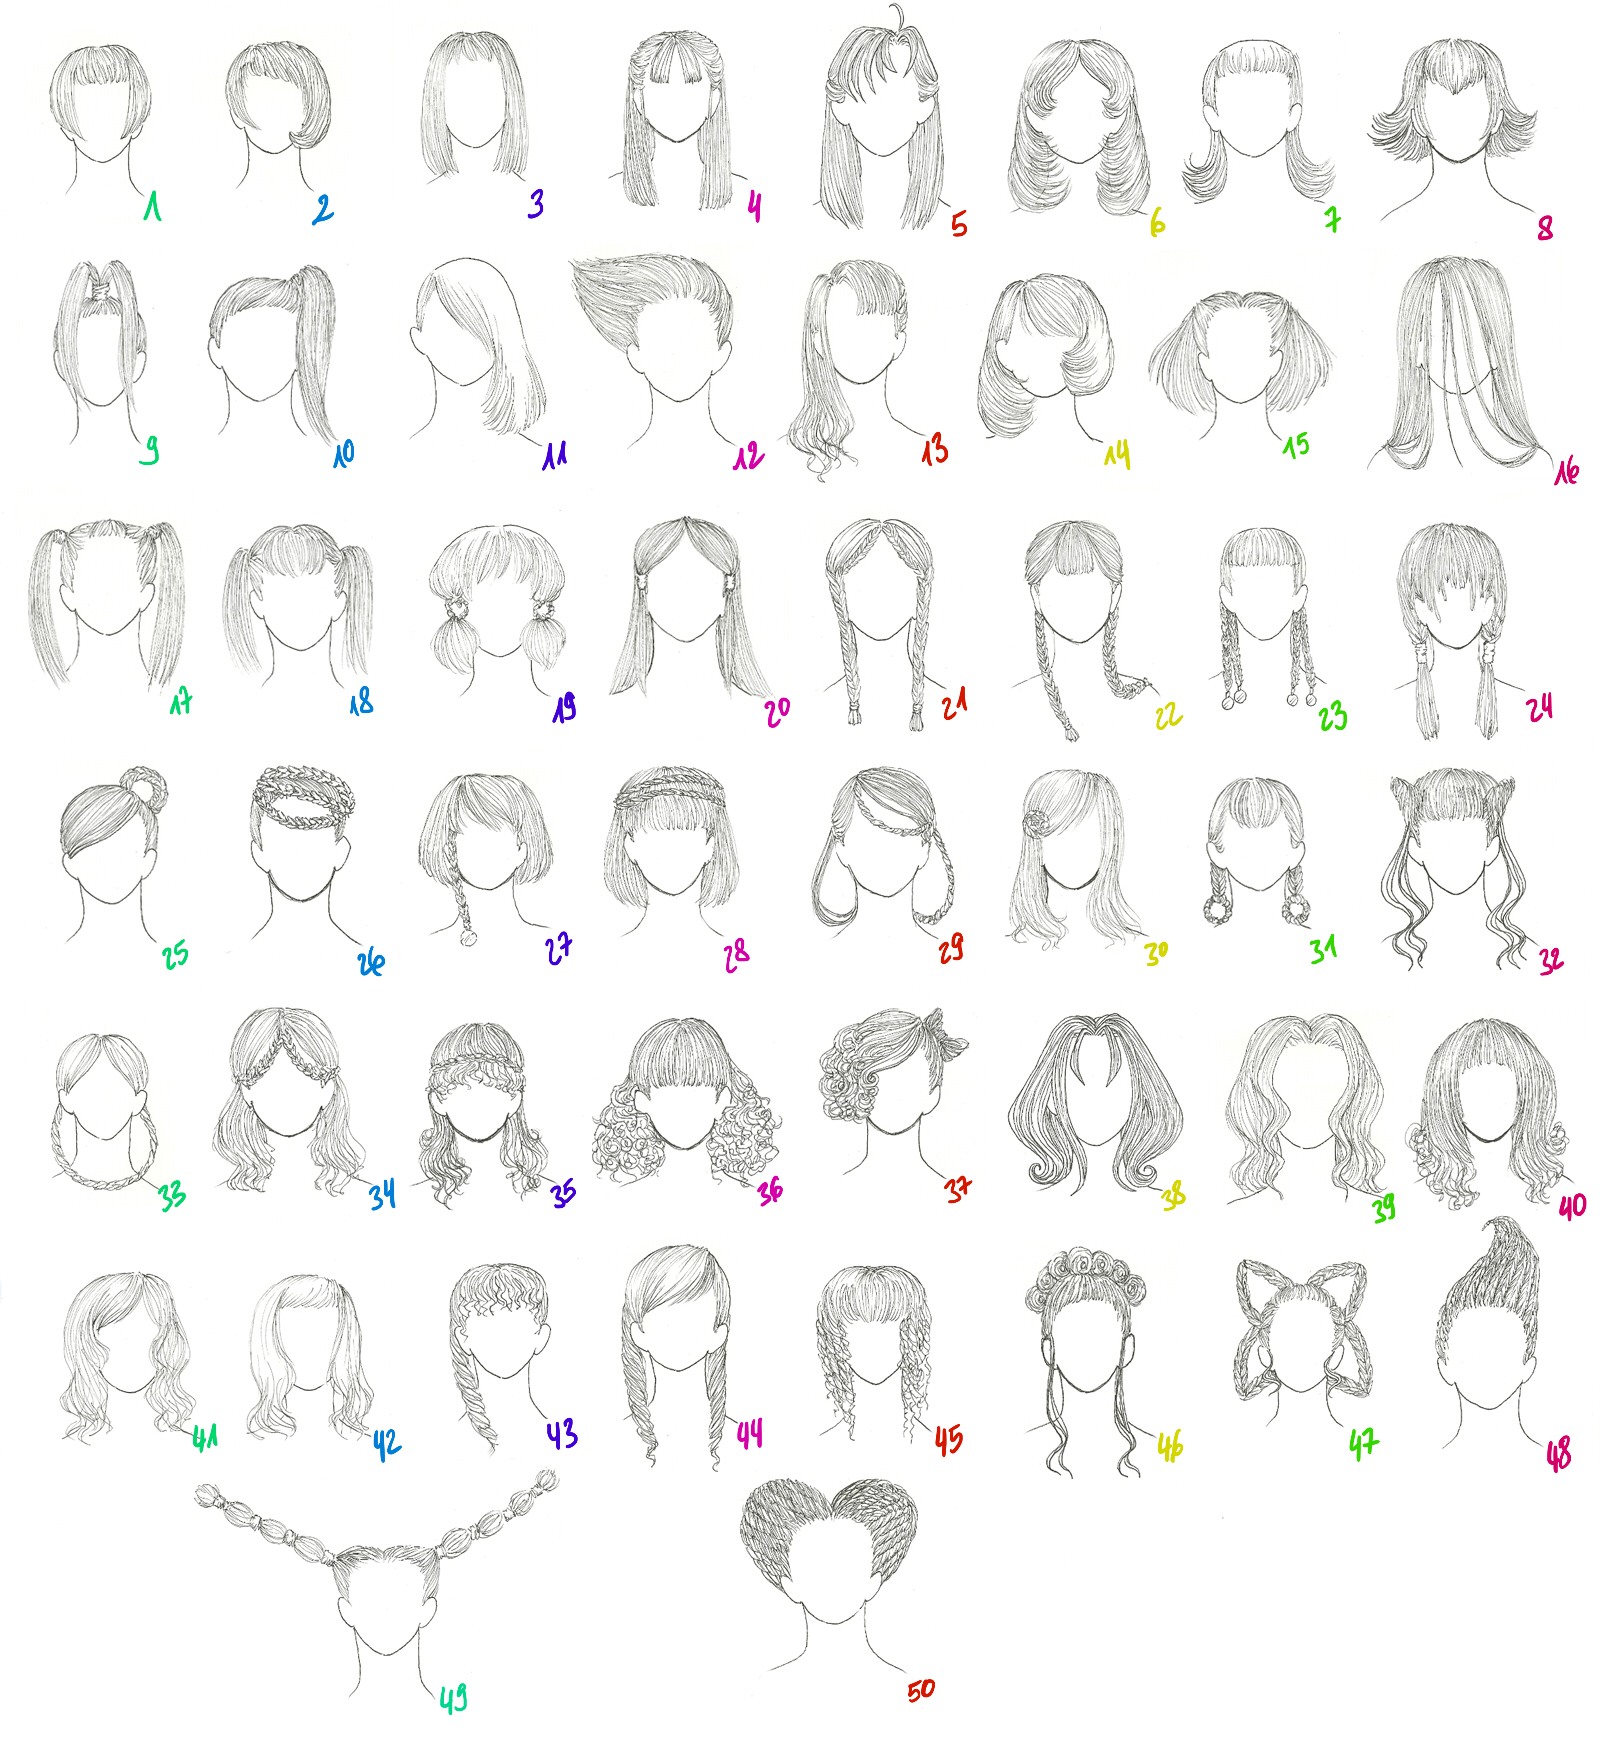 50 Female Anime Hairstyles By Anaiskalinin On Deviantart